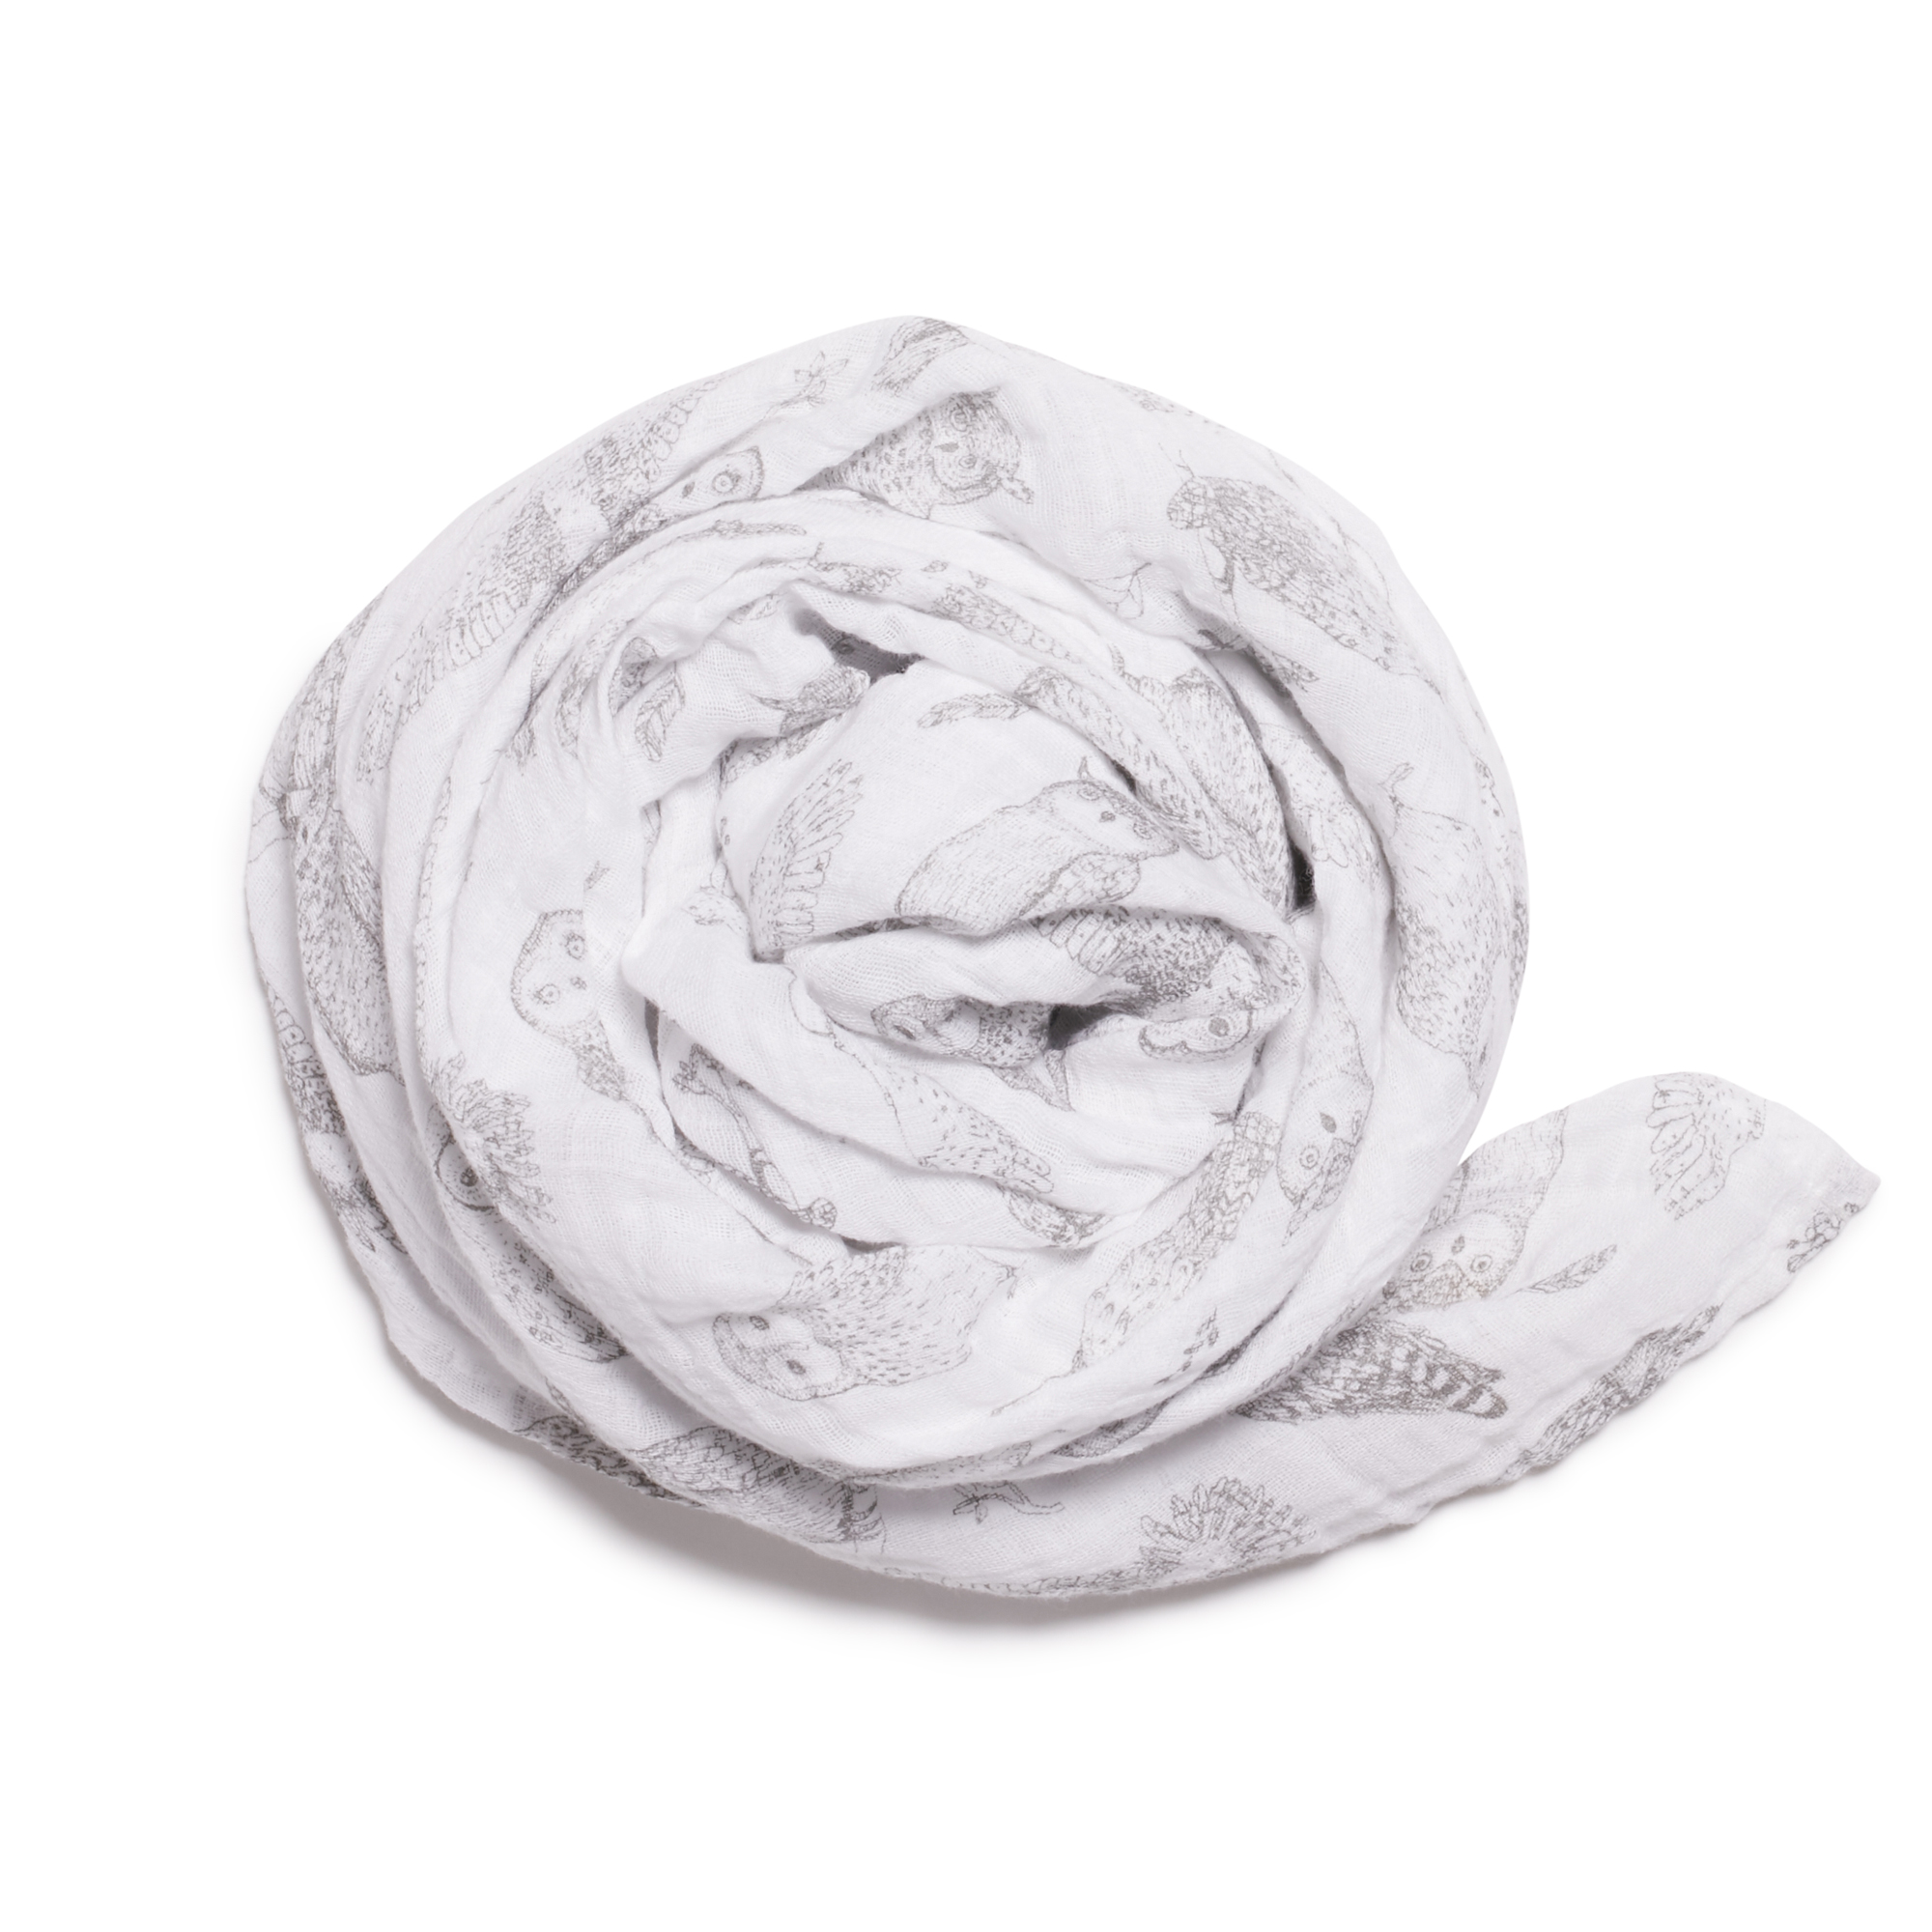 Wilson and Frenchy Little Hoot Muslin Wrap